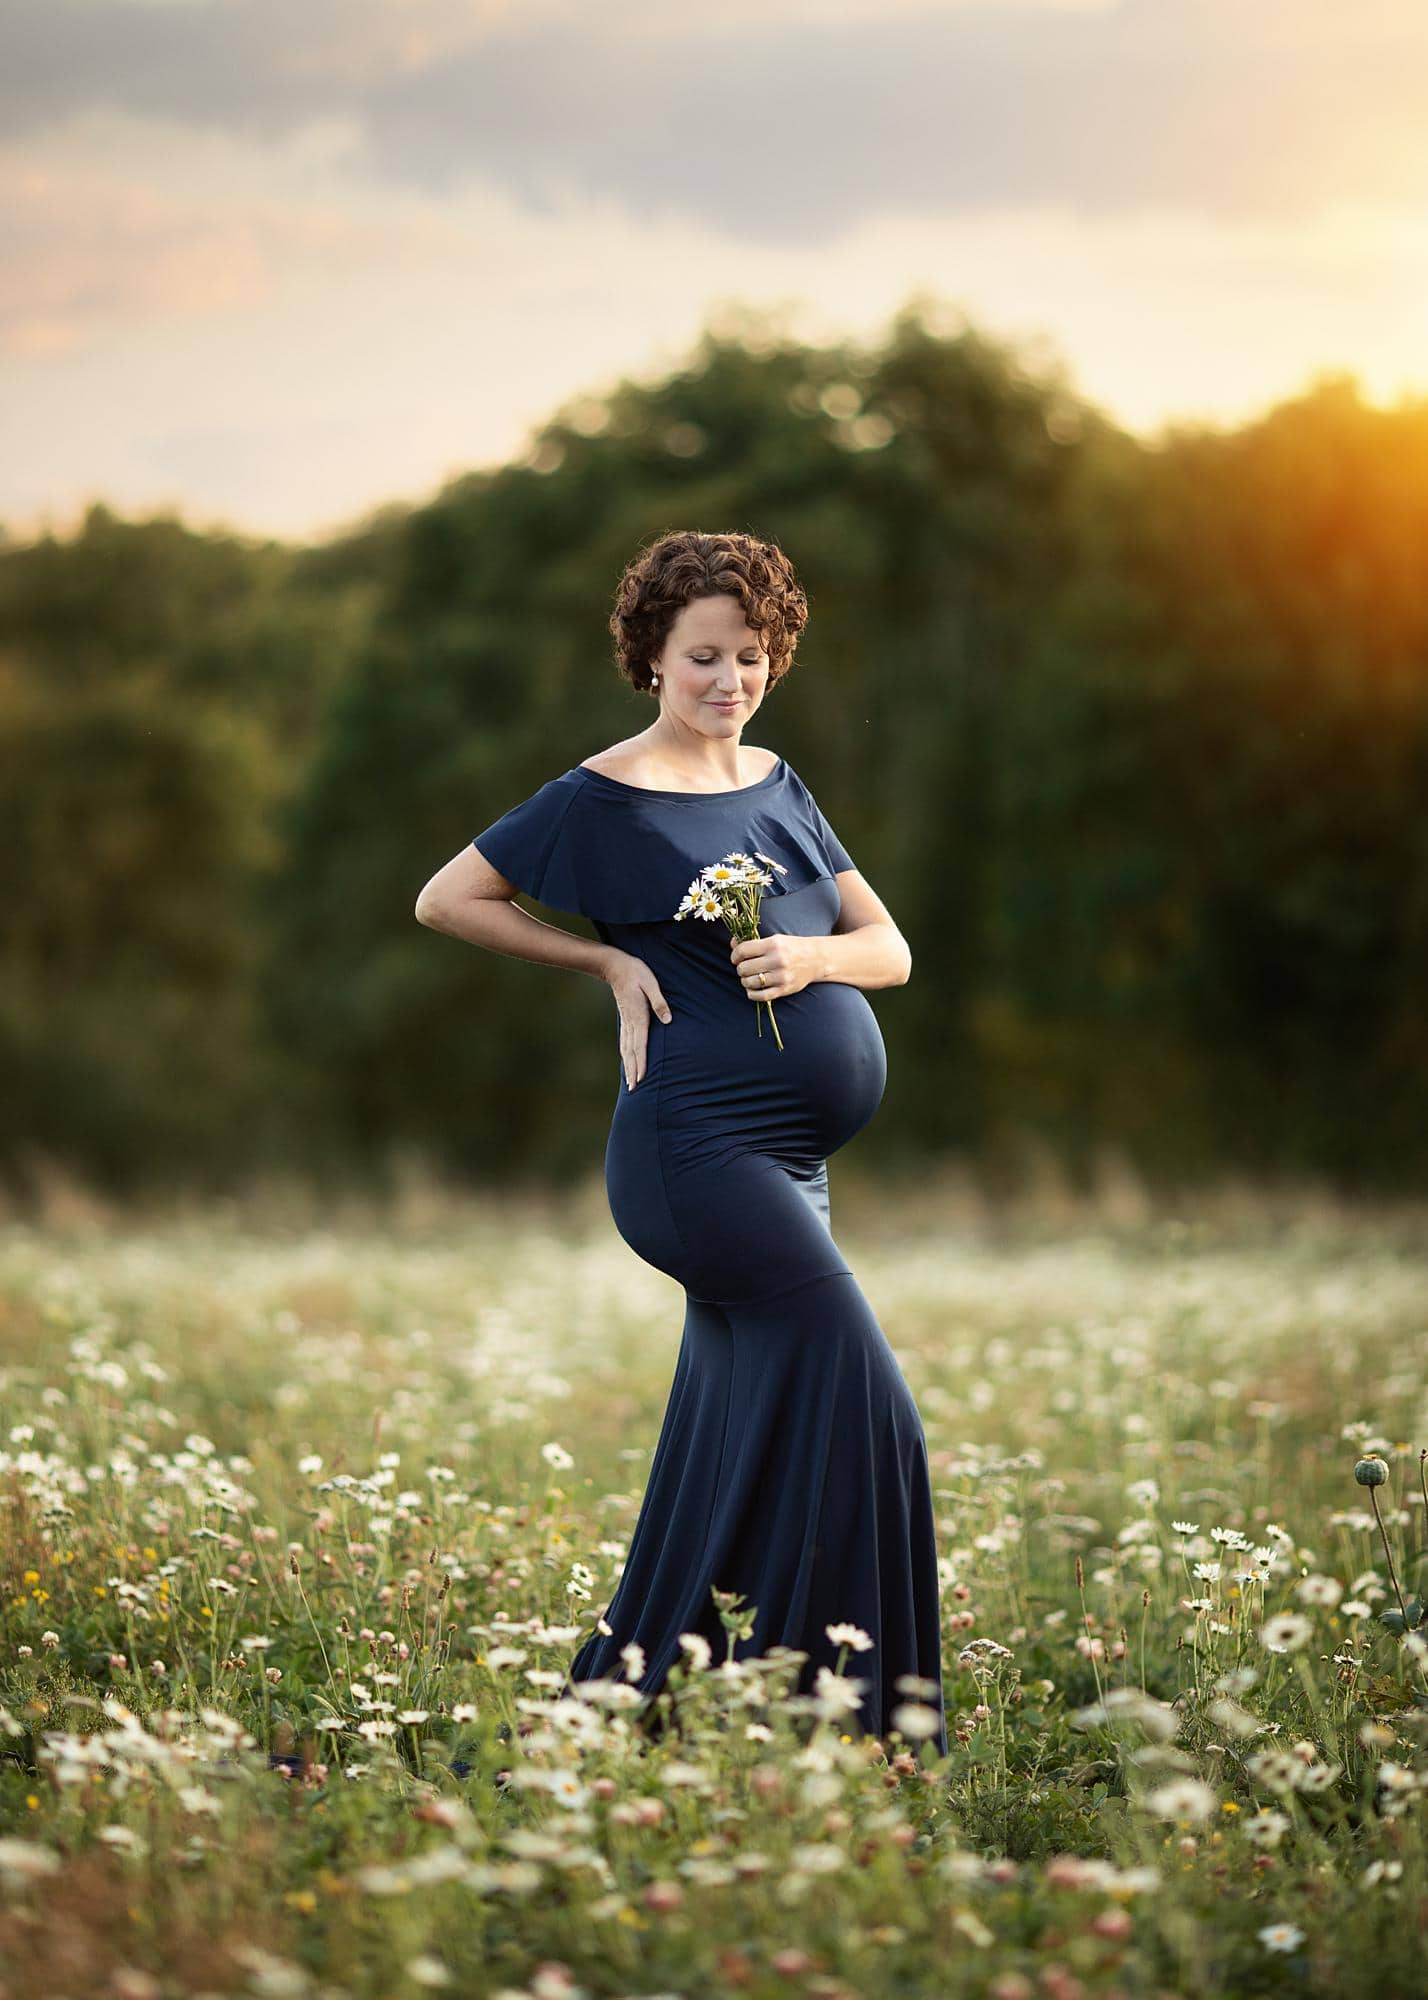 Pregnant woman holding flowers and posing for a maternity photoshoot in Suffolk flower field